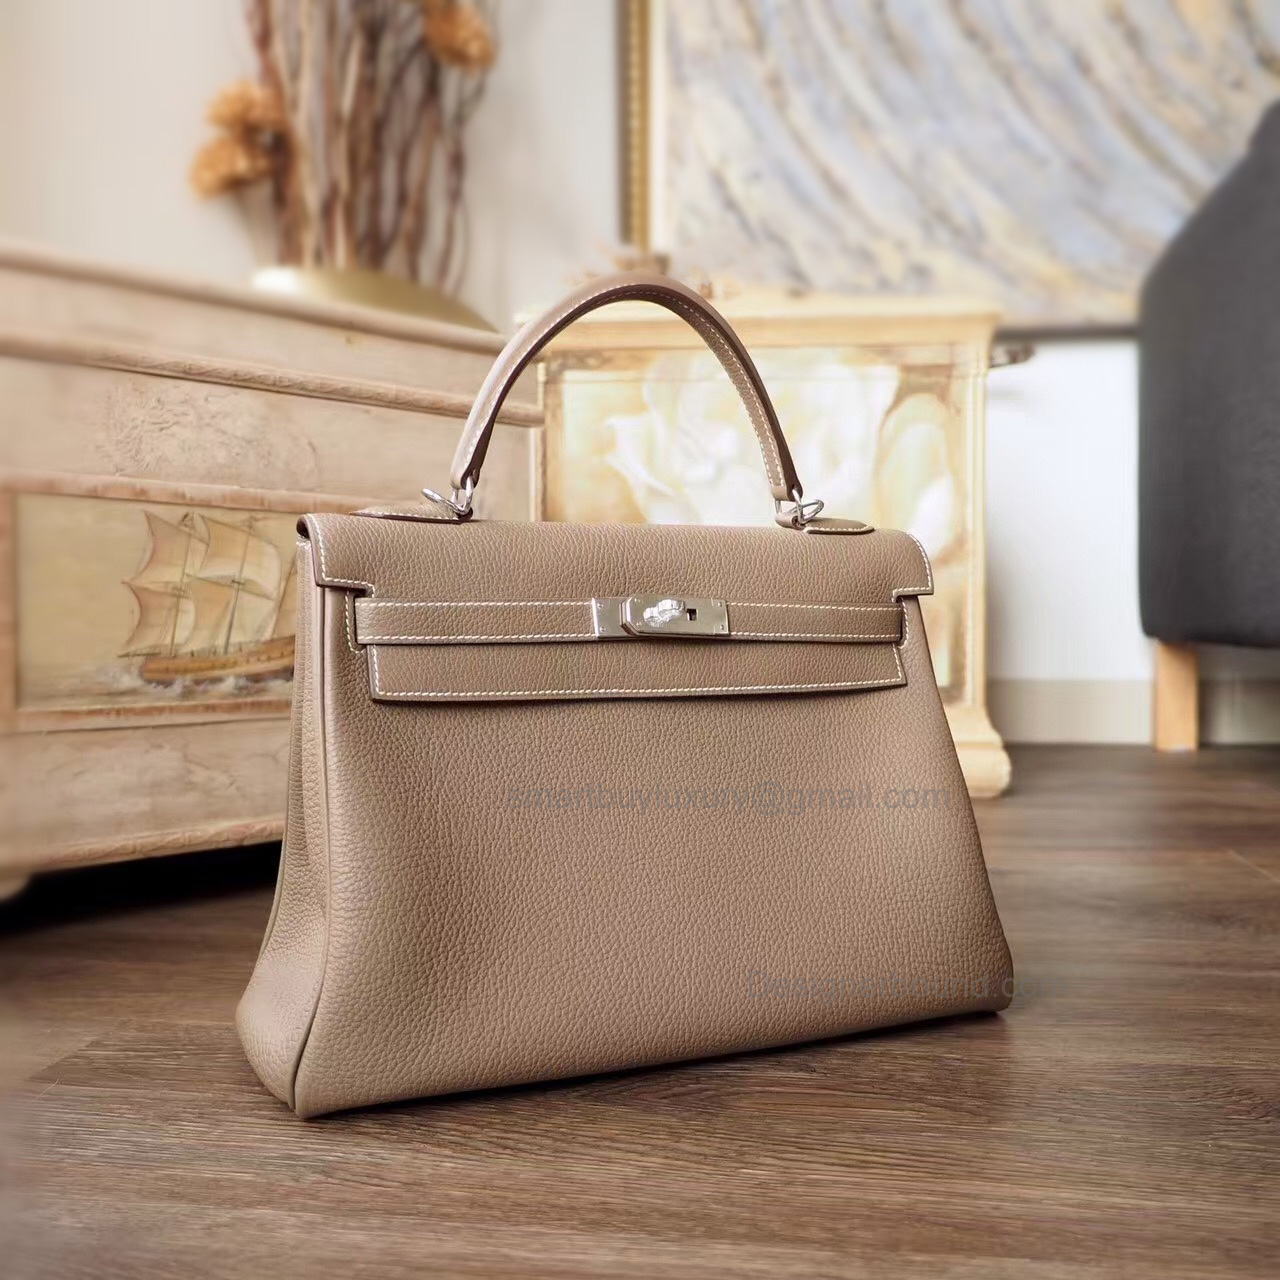 Hand Stitched Hermes Kelly 32 Copy Bag in ck18 Etoupe Togo Calfskin PHW